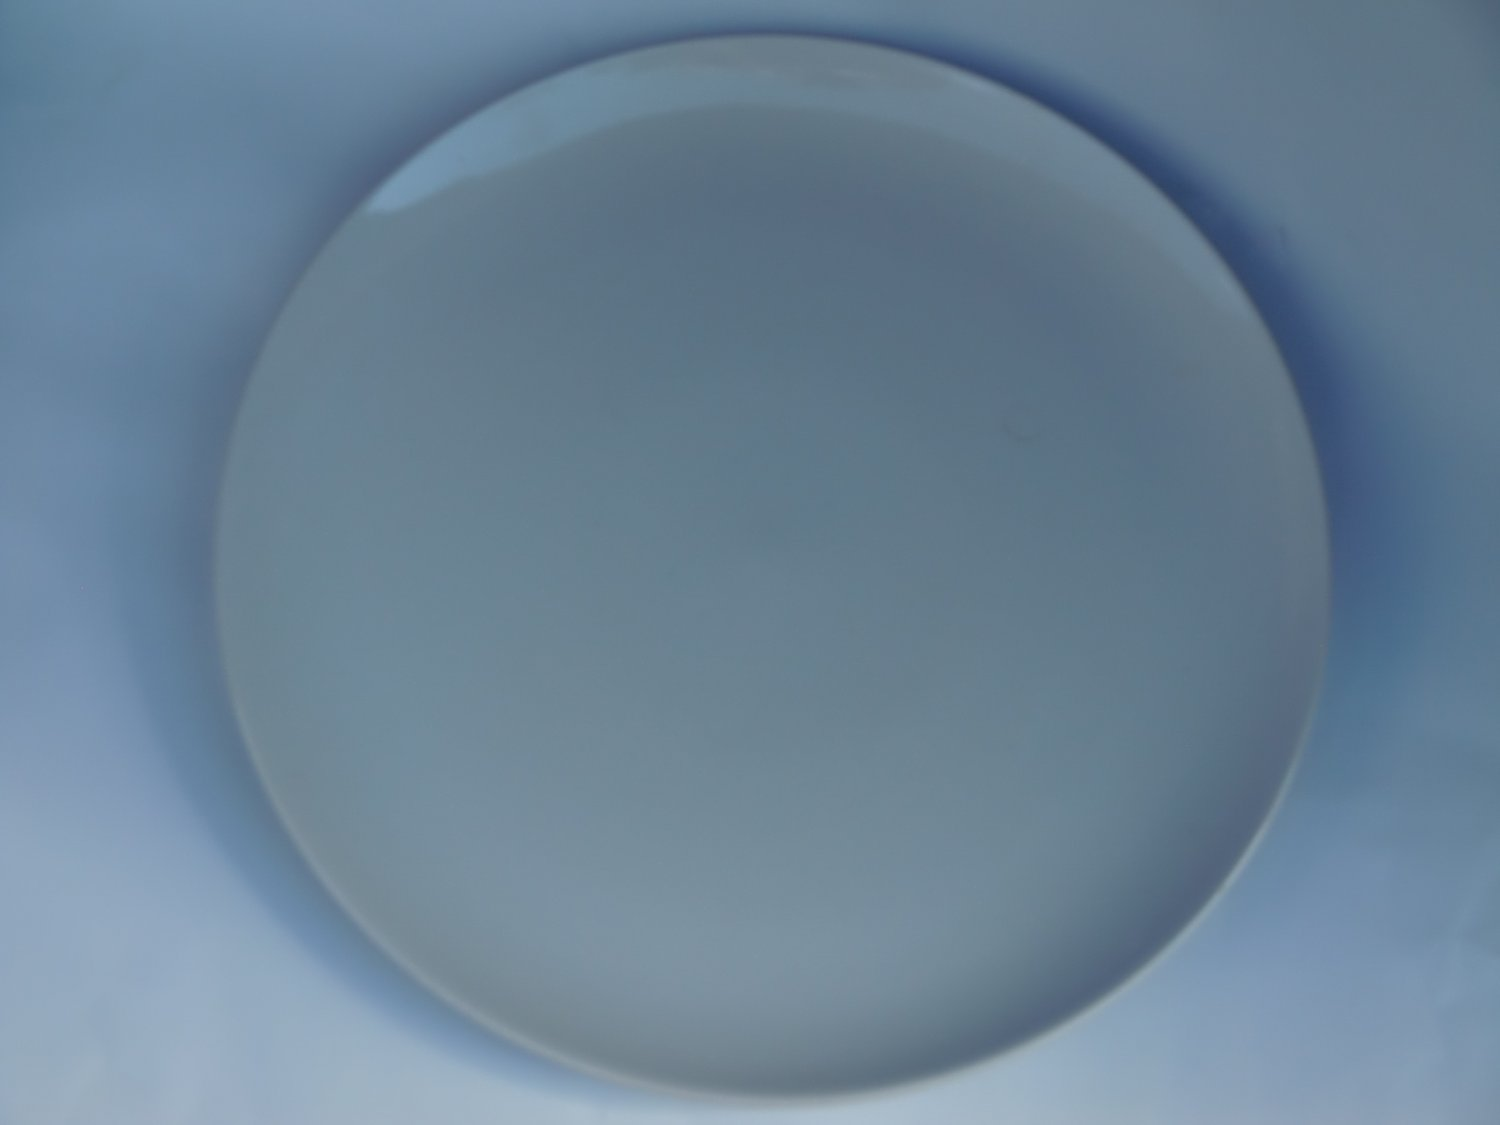 Pampered Chef Simple Additions Like New Large Round Serving Platter, White #2034